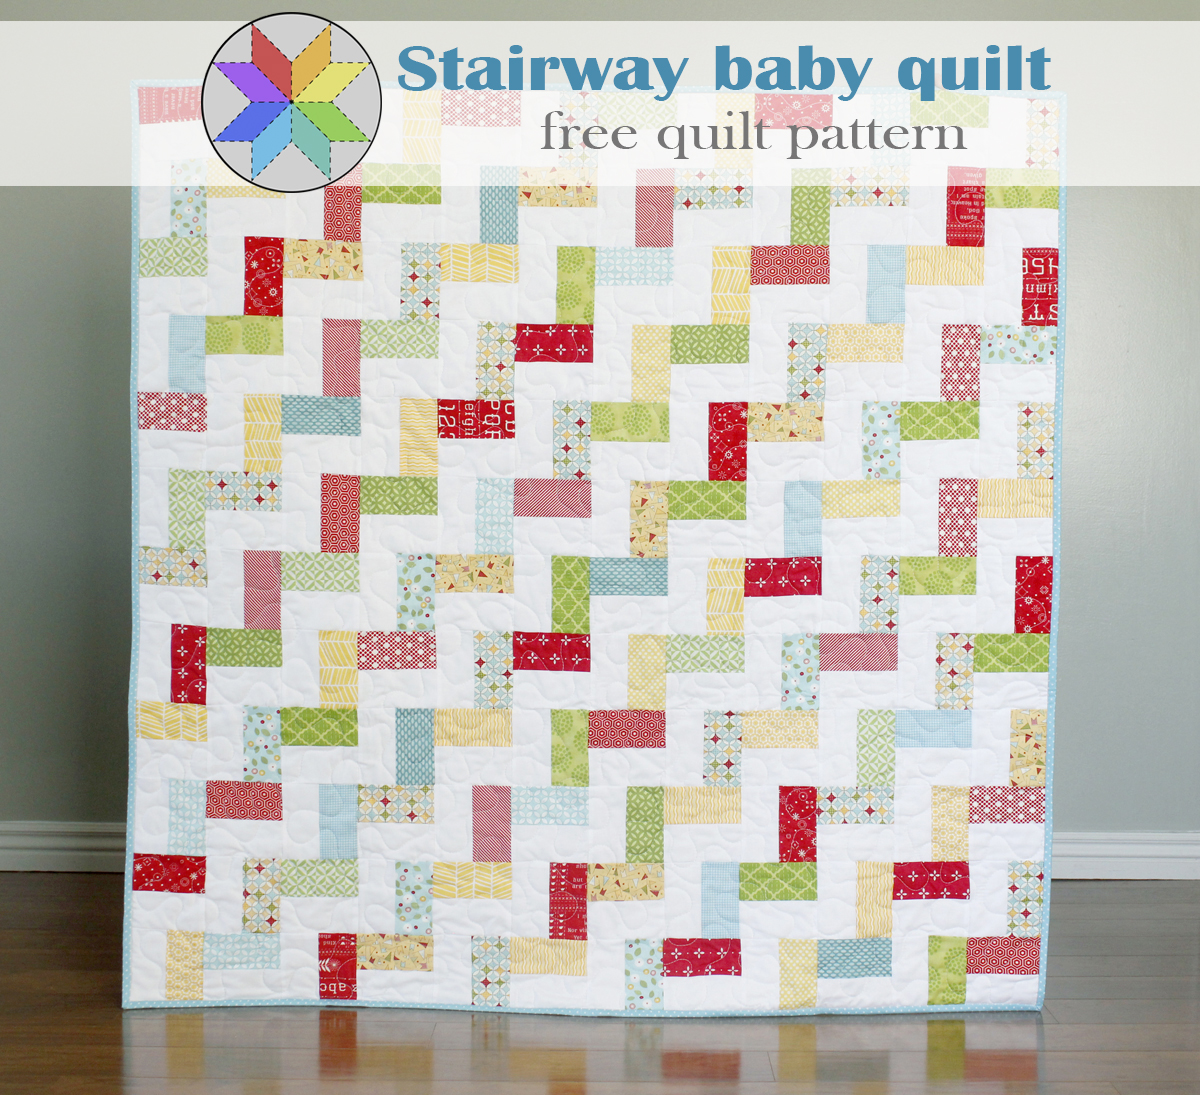 Ridiculous image with baby quilt patterns free printable